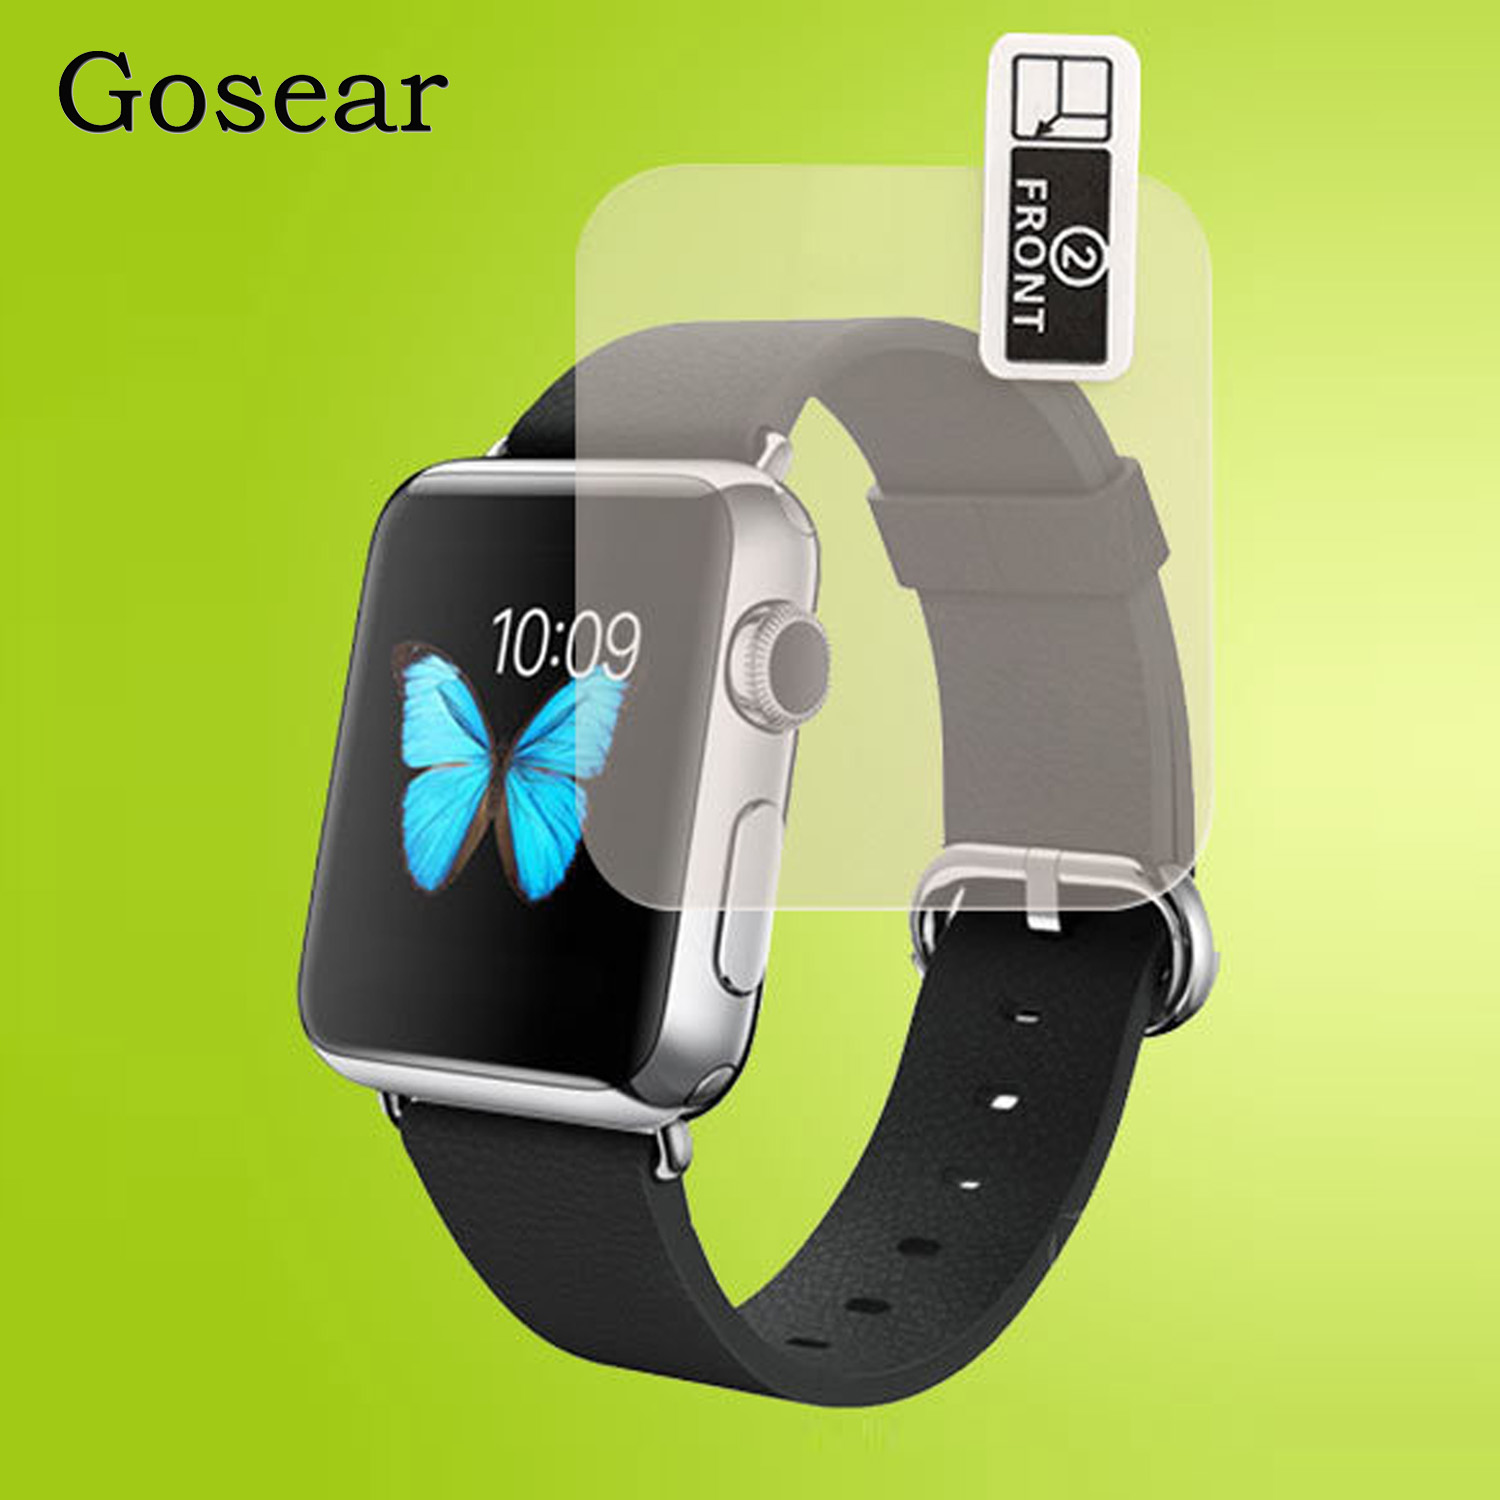 7423c79d75d Gosear 4 PCS TPU Full Cover High Definition Screen Protector Film For Apple  Watch iWatch Series 1 2 3 38mm 42mm AccessoriesUSD 1.76 piece